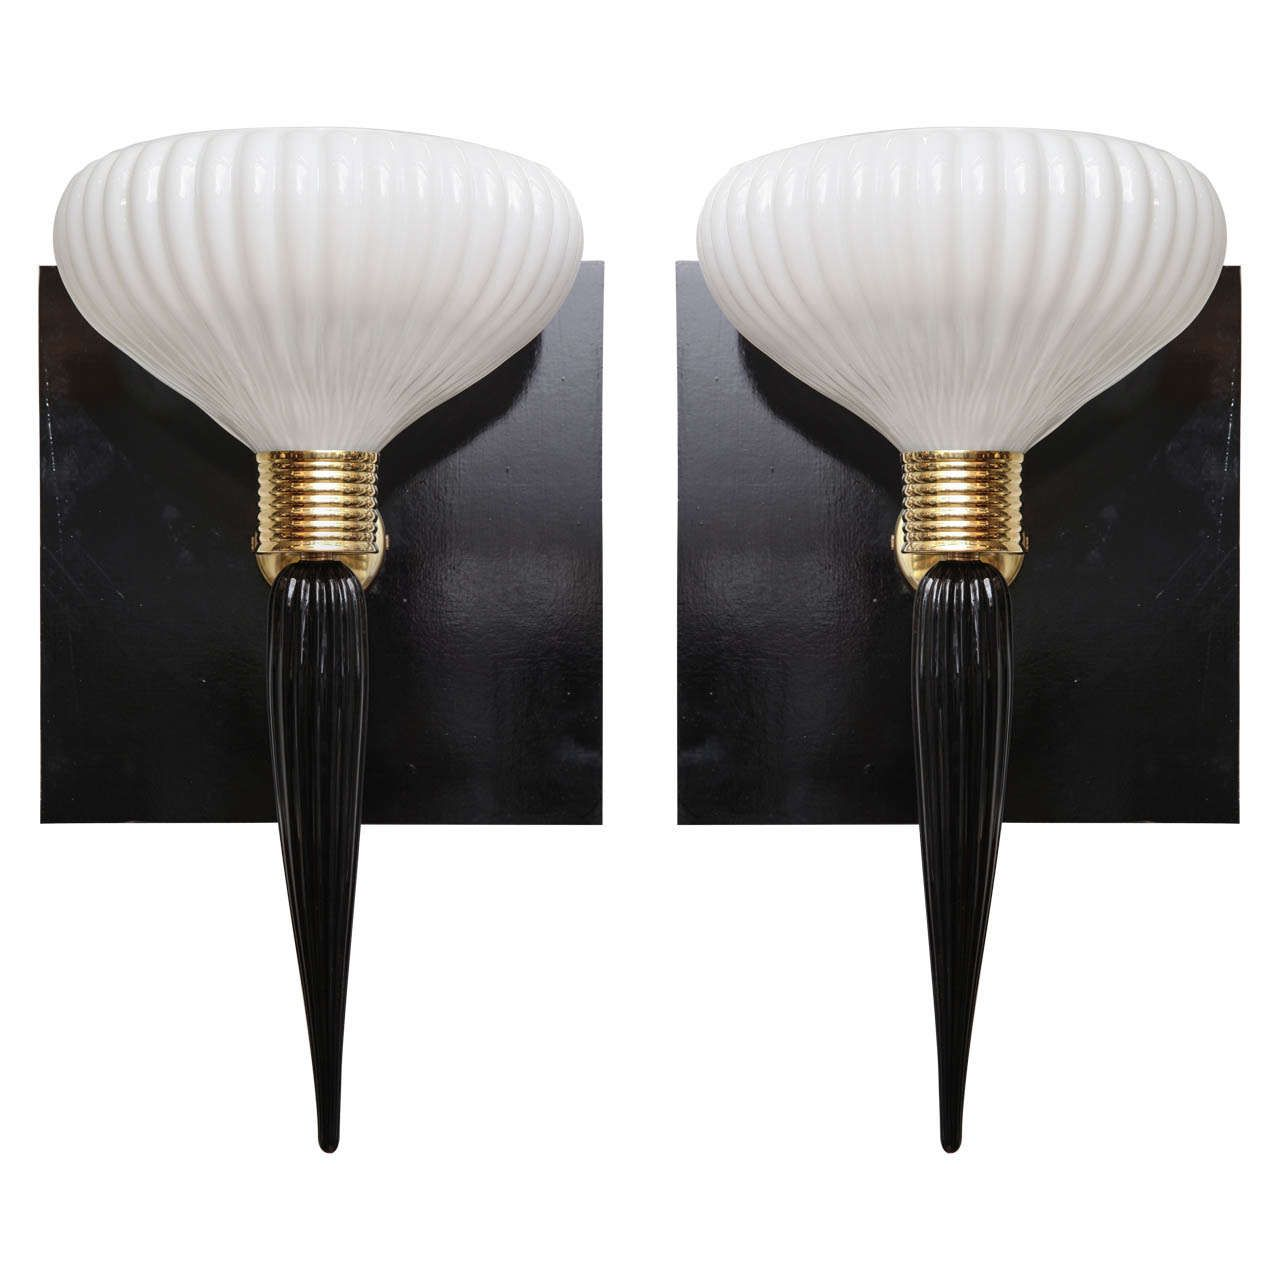 Pair of art deco murano wall sconces wall sconces modern wall and pair of art deco murano wall sconces mozeypictures Gallery